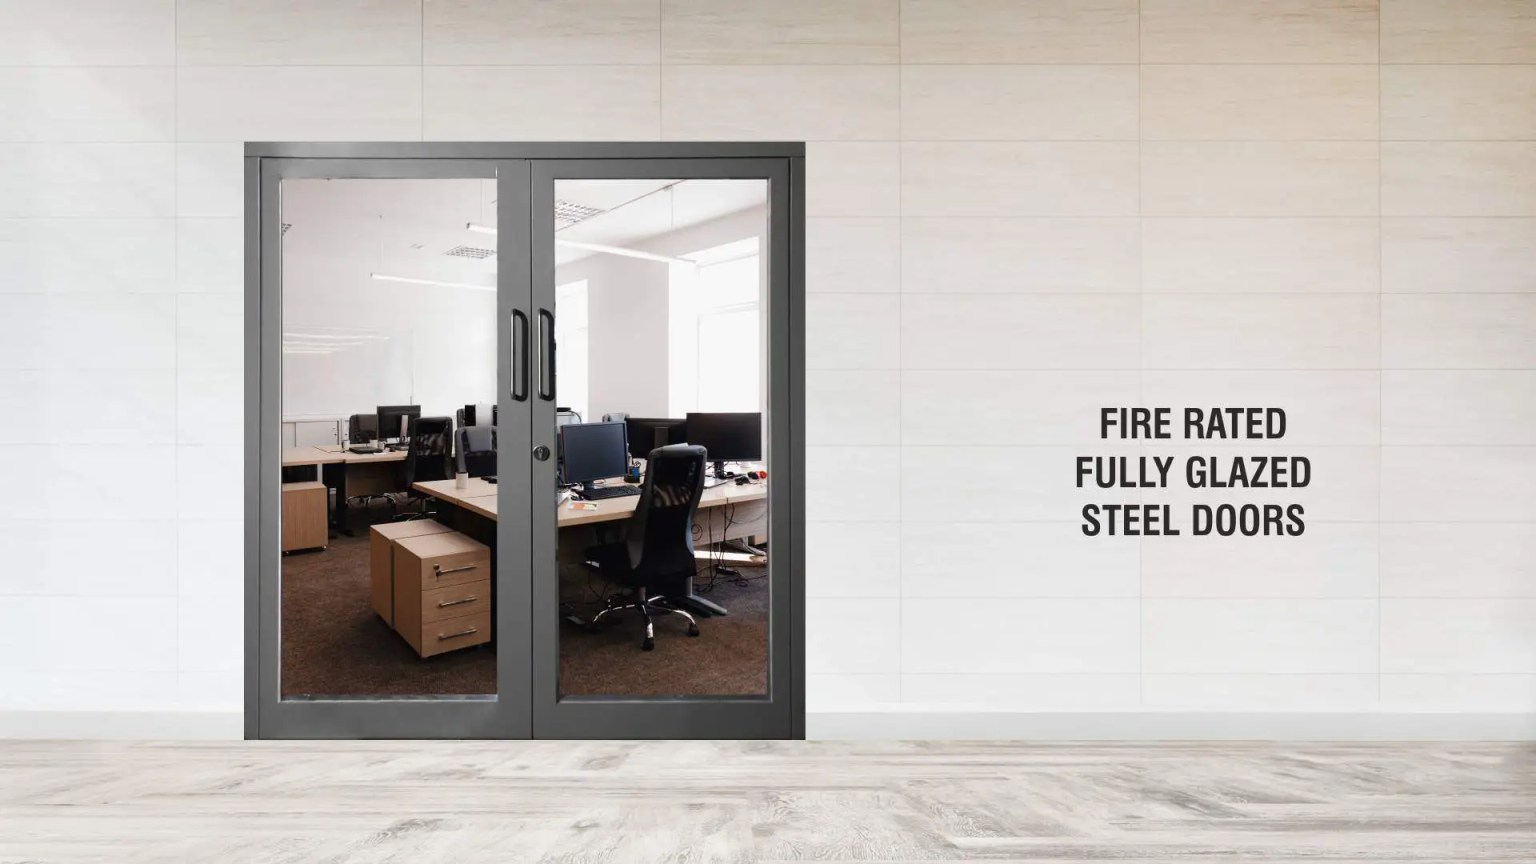 fire-rated-fully-glazed-steel-doors